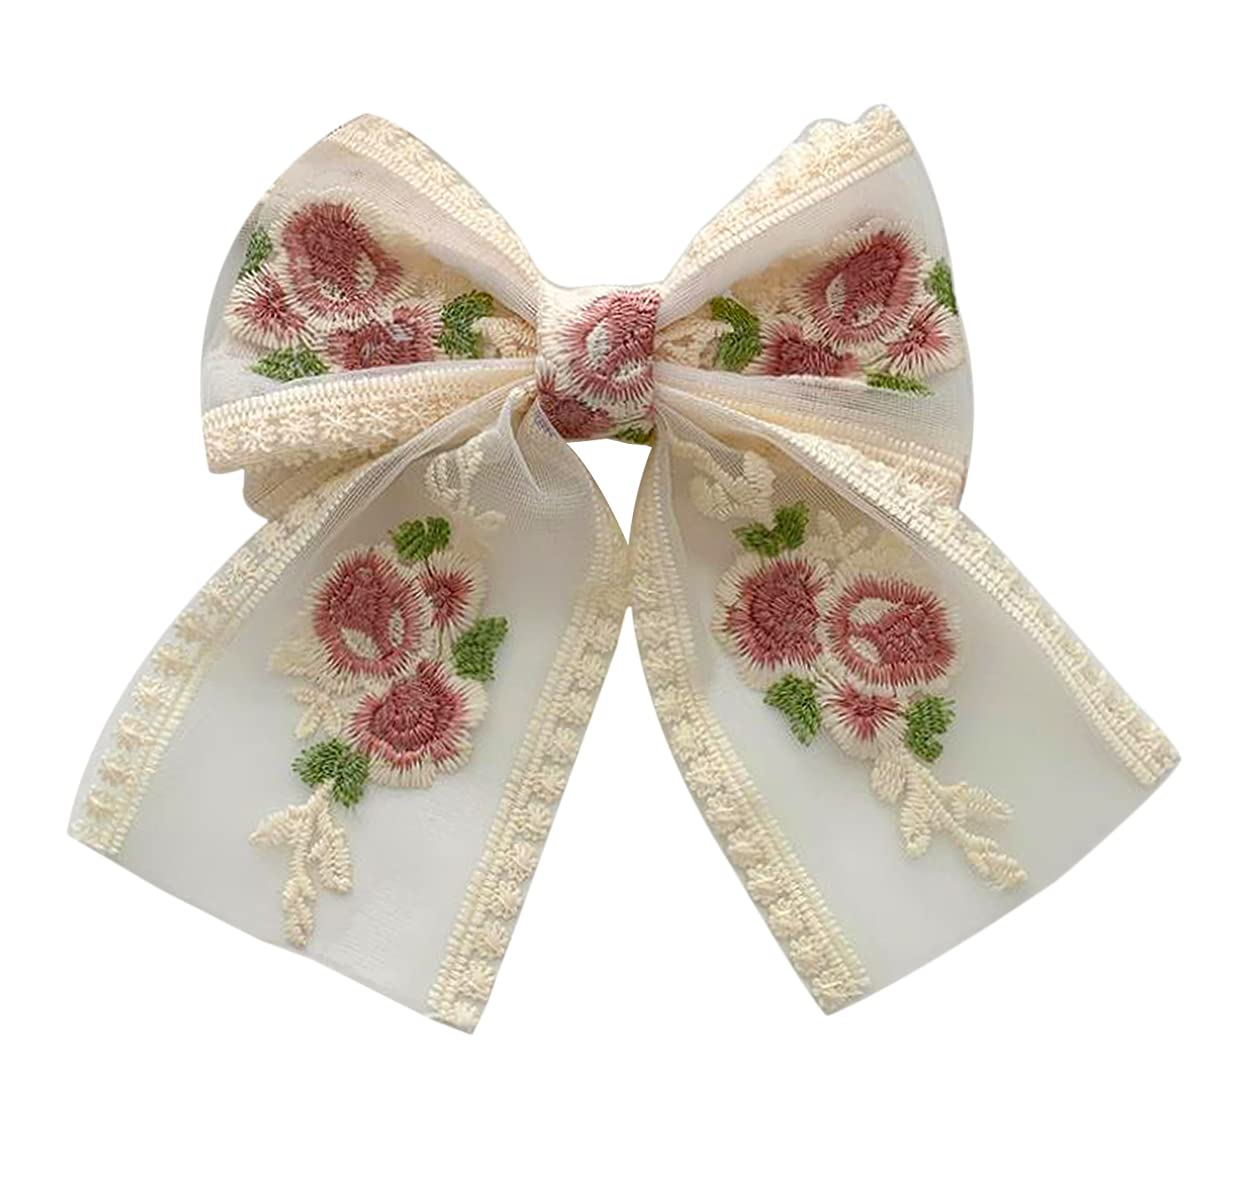 Handmade Lace Bow Hair Clip, Vintage Romantic French Style Flower Hair Accessories For Women, Girls, Ladies. (Big)